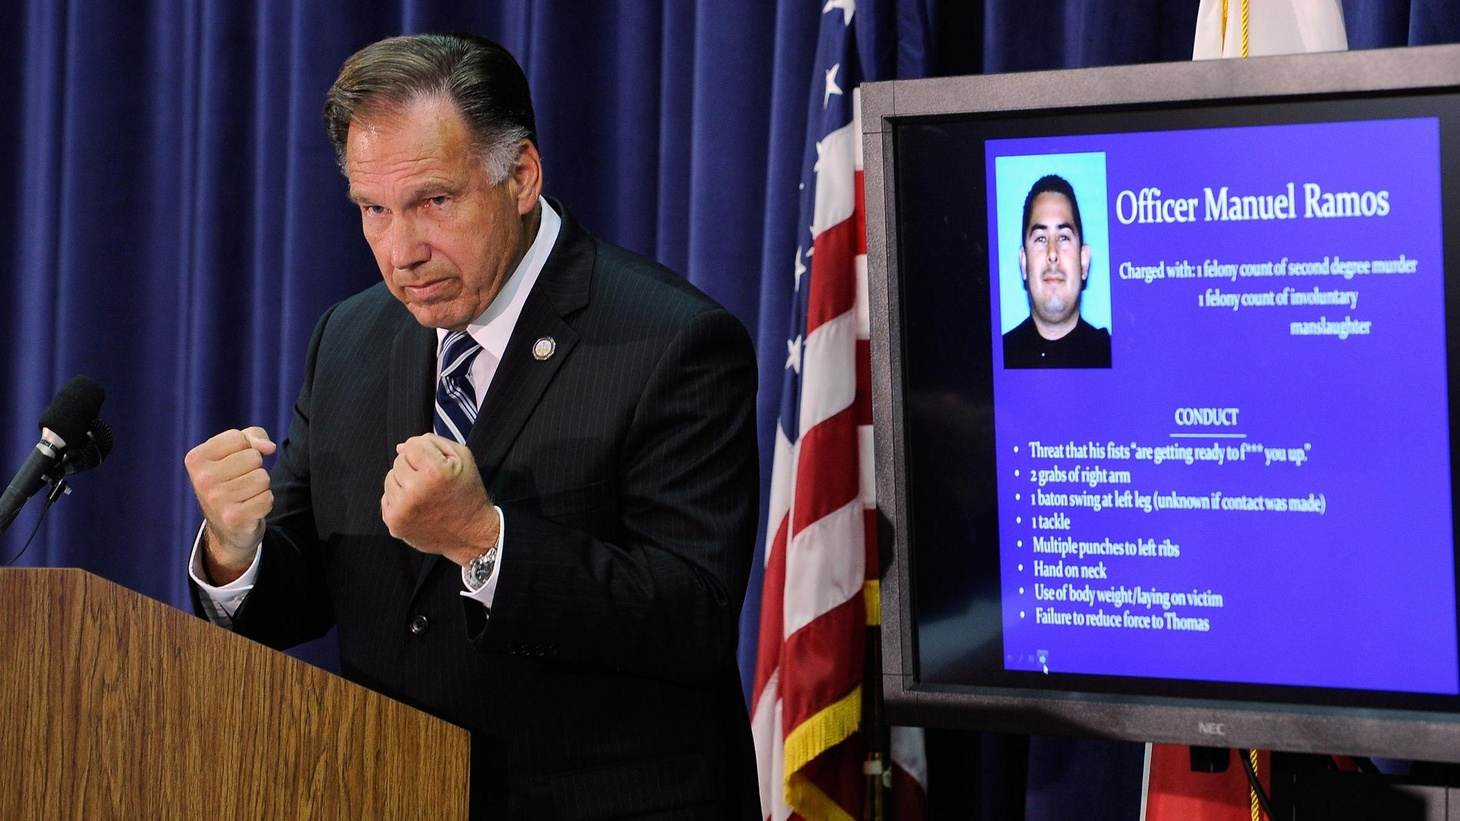 The OC Weekly says conservative Orange County will never be the same. DA Tony Rackauckas has charged one Fullerton policeman with murder and another with involuntary manslaughter...